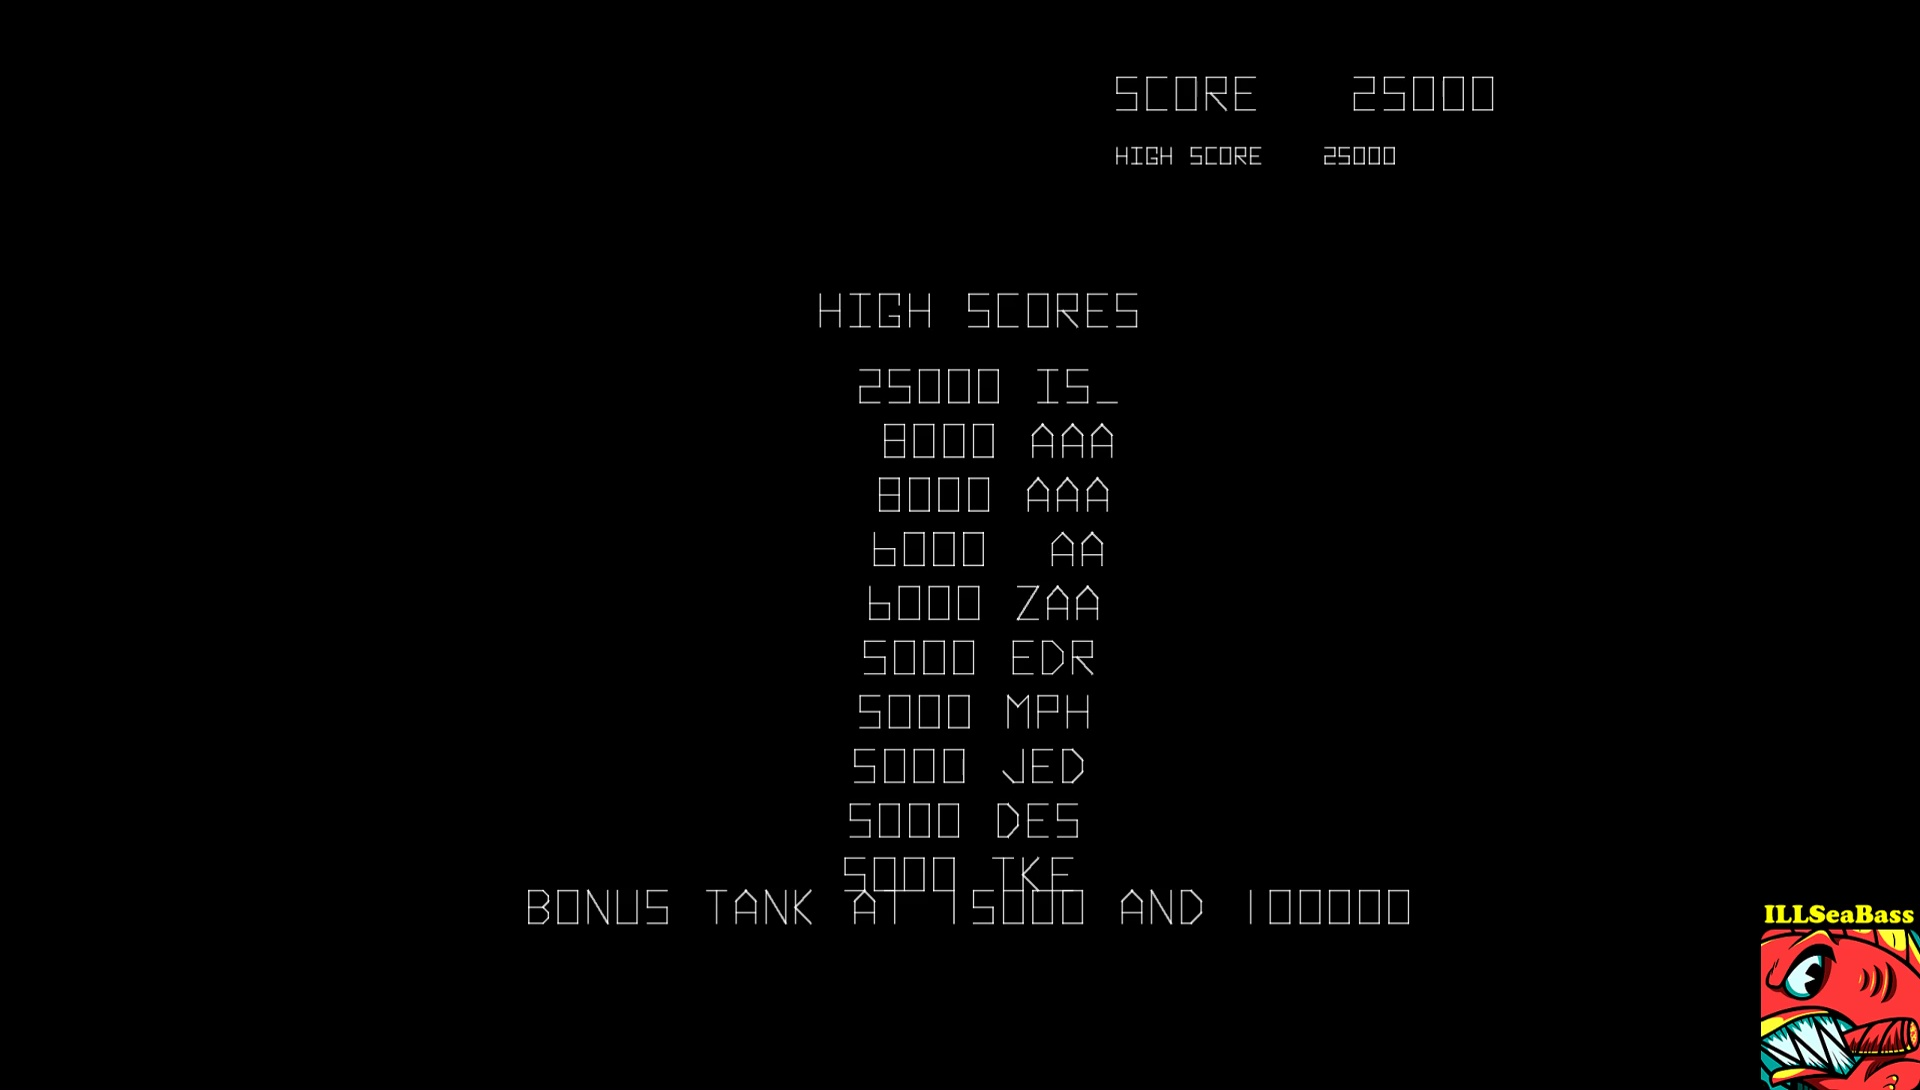 ILLSeaBass: Battlezone (Arcade Emulated / M.A.M.E.) 25,000 points on 2017-09-09 06:35:12